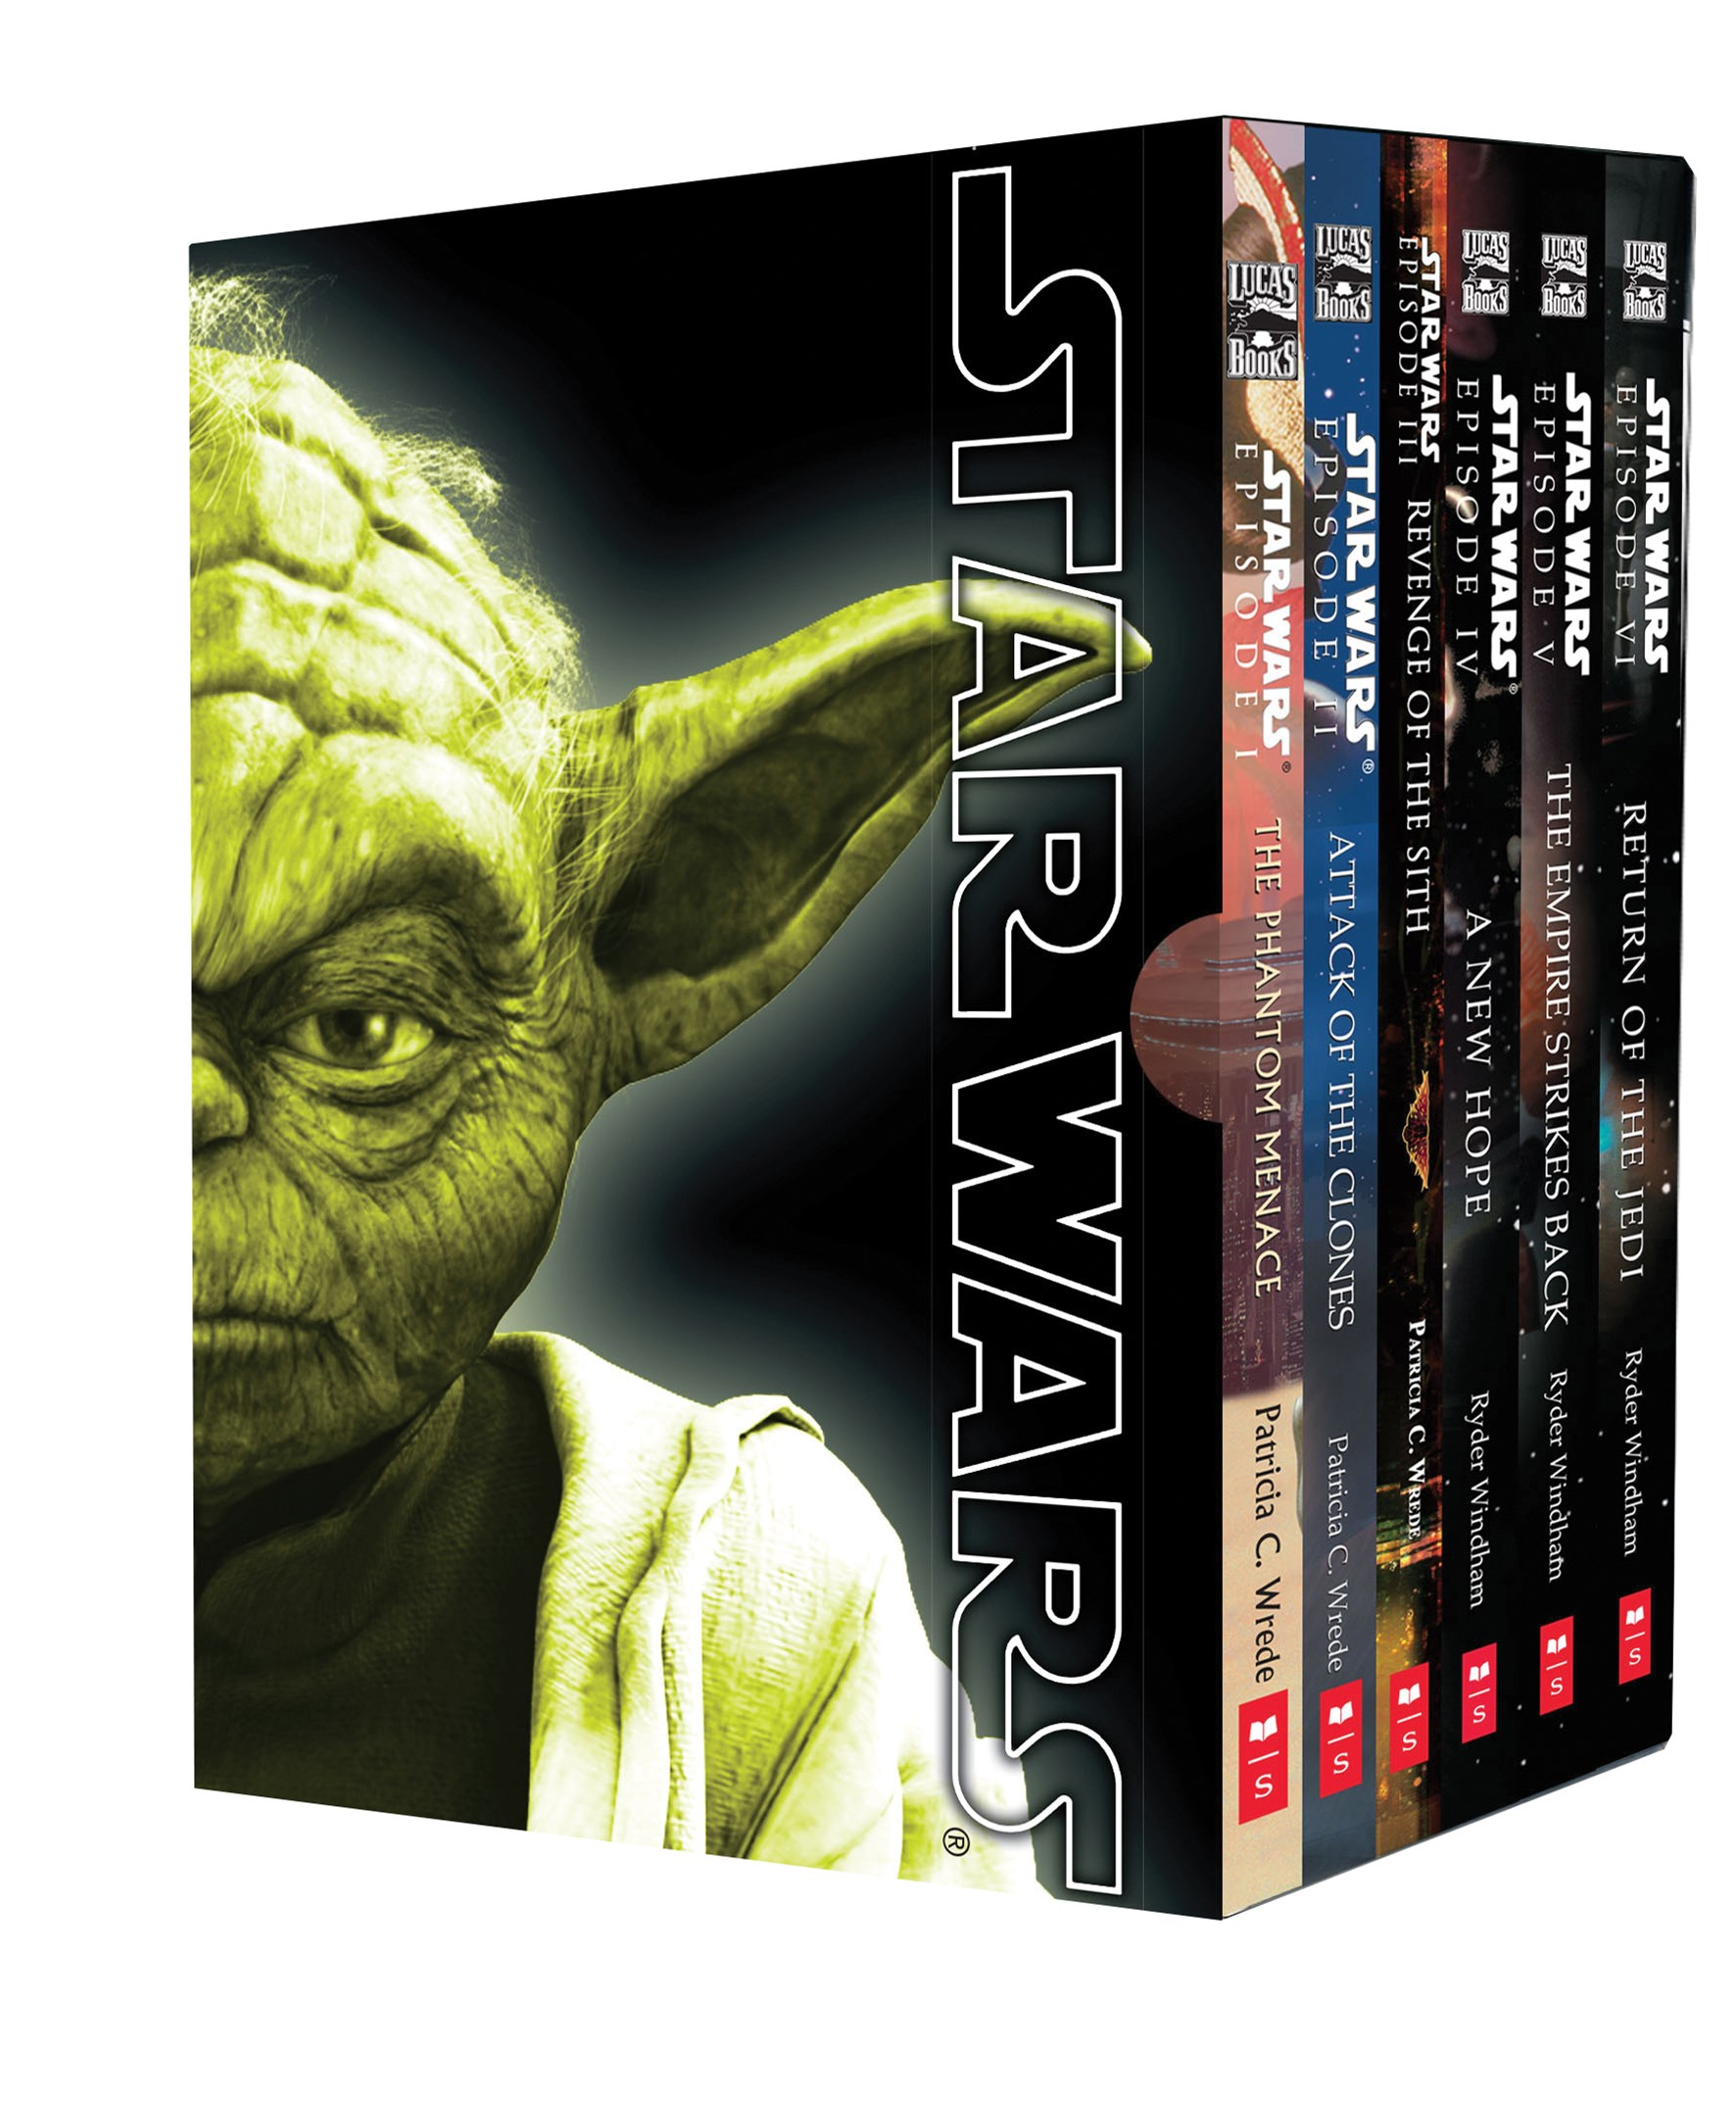 Star Wars Movie Novel Boxed Set